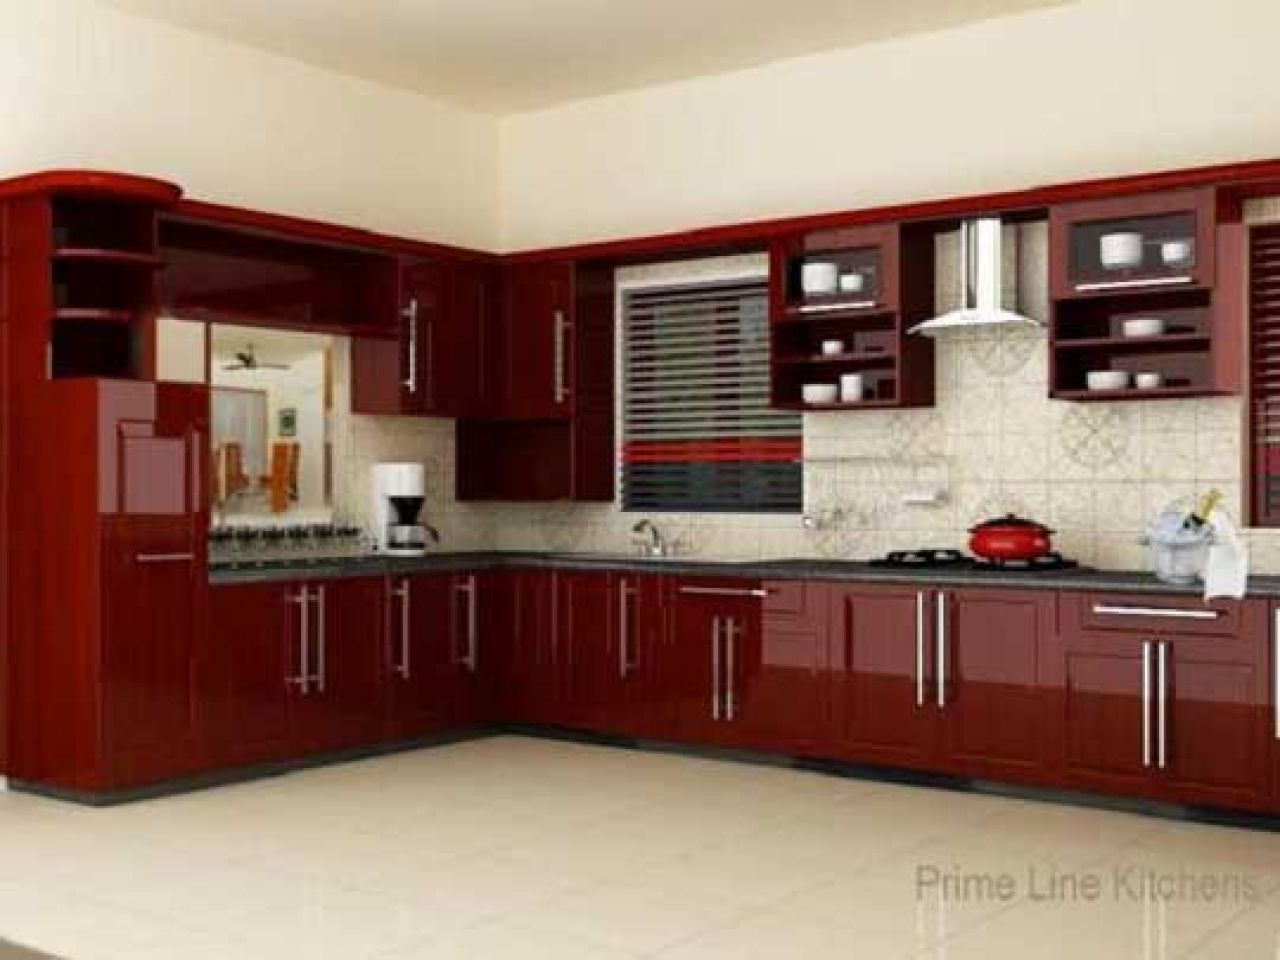 Good New Model Kitchen Design Kerala Conexaowebmix.com